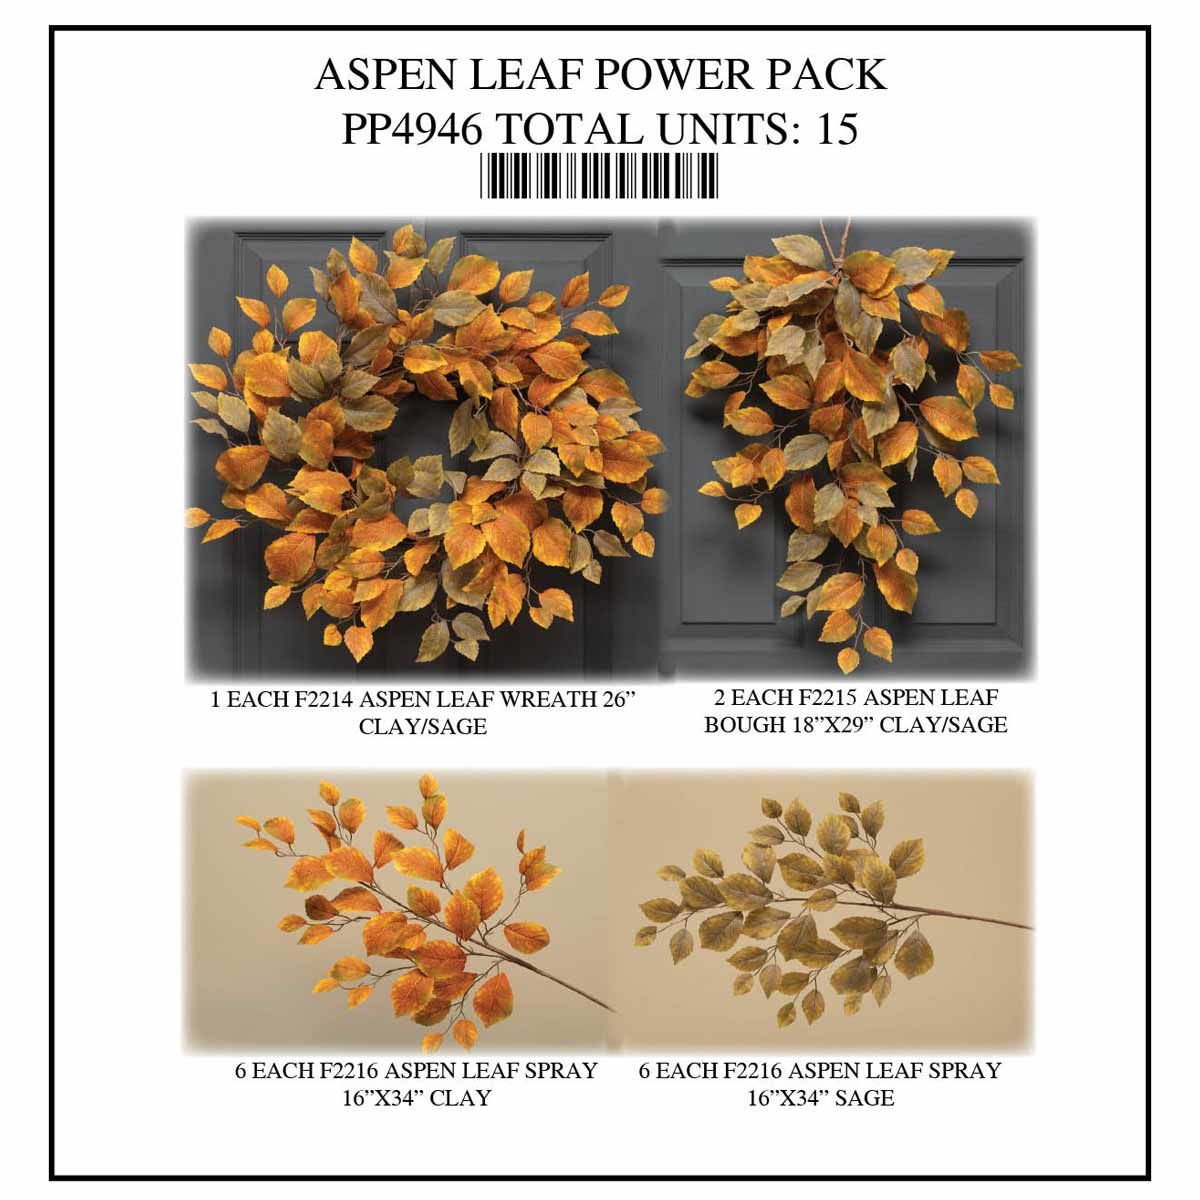 ASPEN LEAF POWER PACK 15 UNITS PP4946